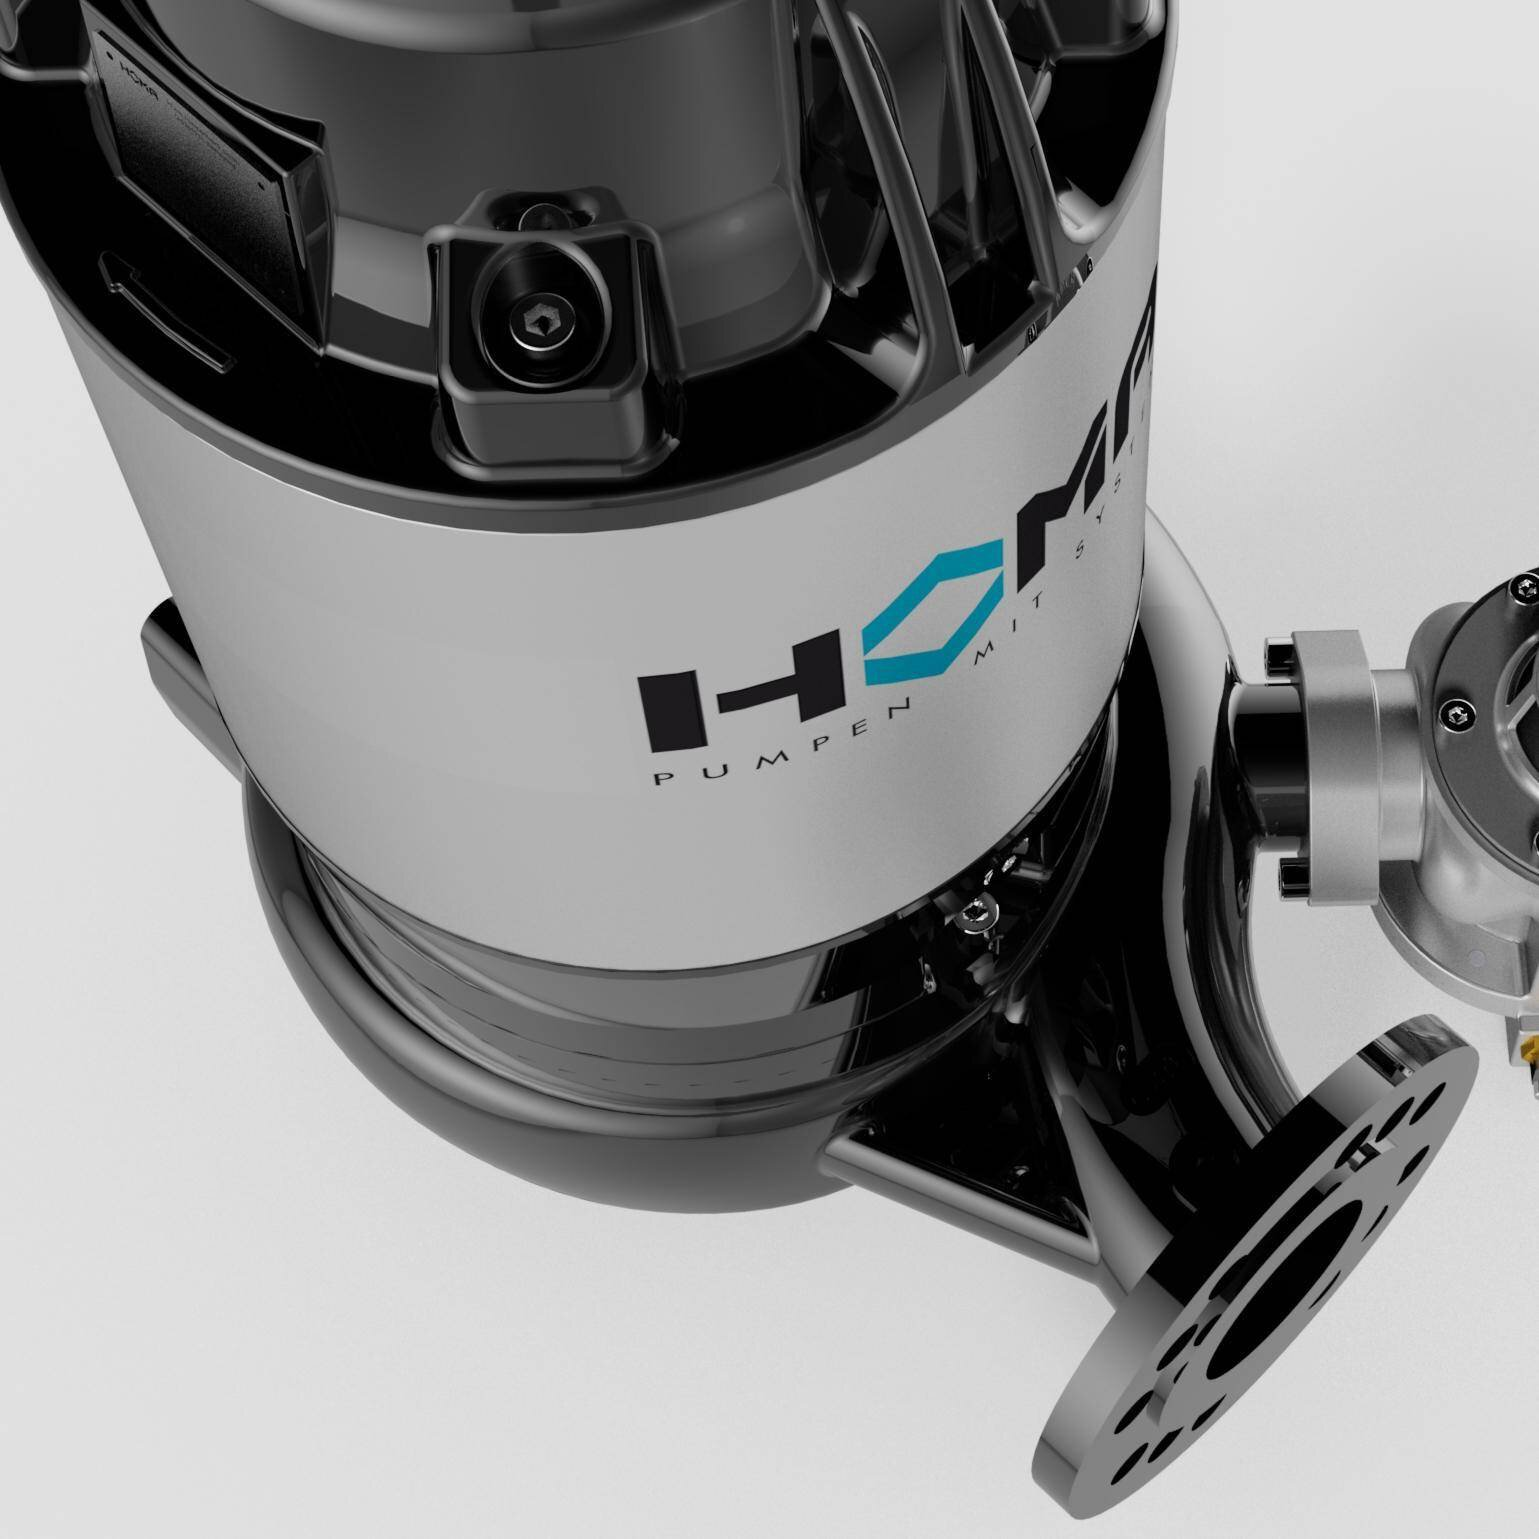 Gallery image 0 - High solid contamination in waste water? Clogged pumps? We have the solution!